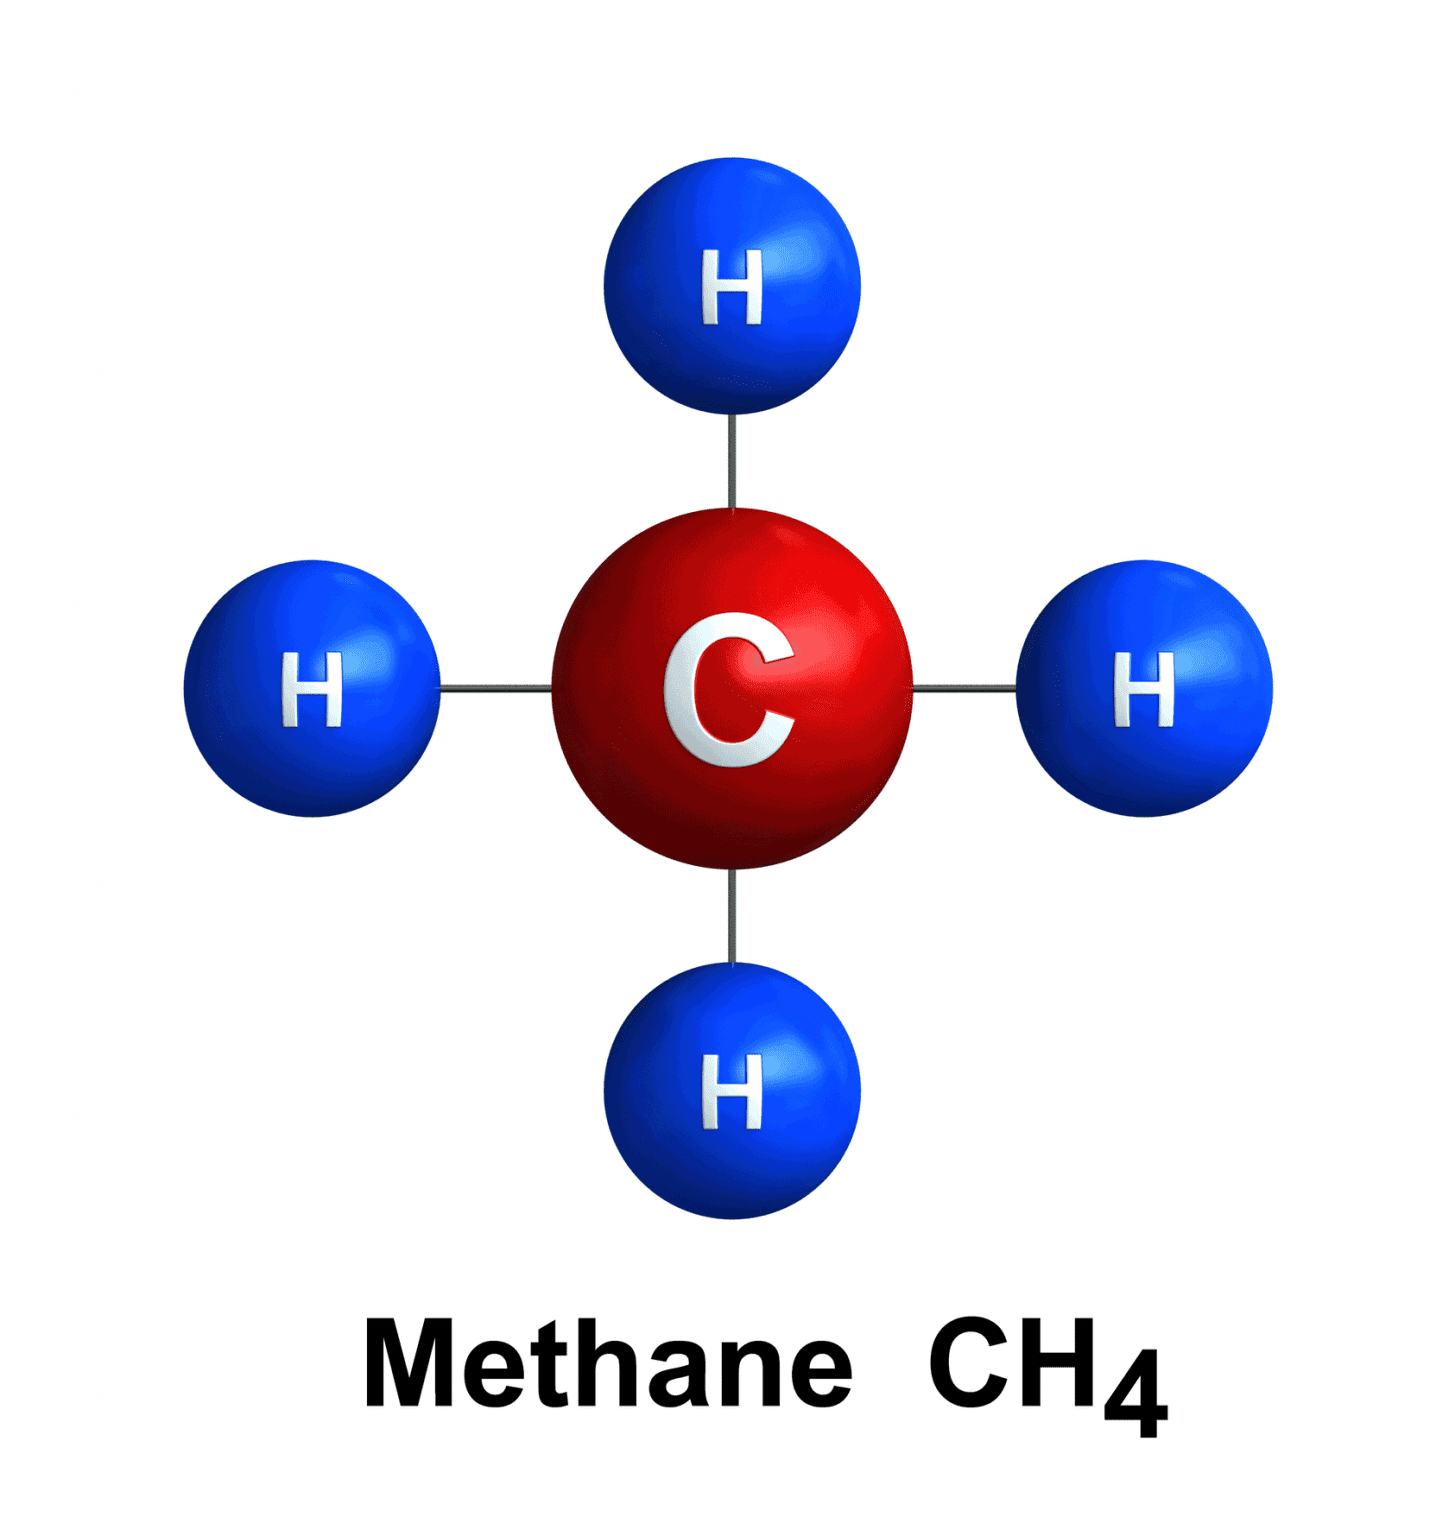 methane and hydrogen atoms in red and blue